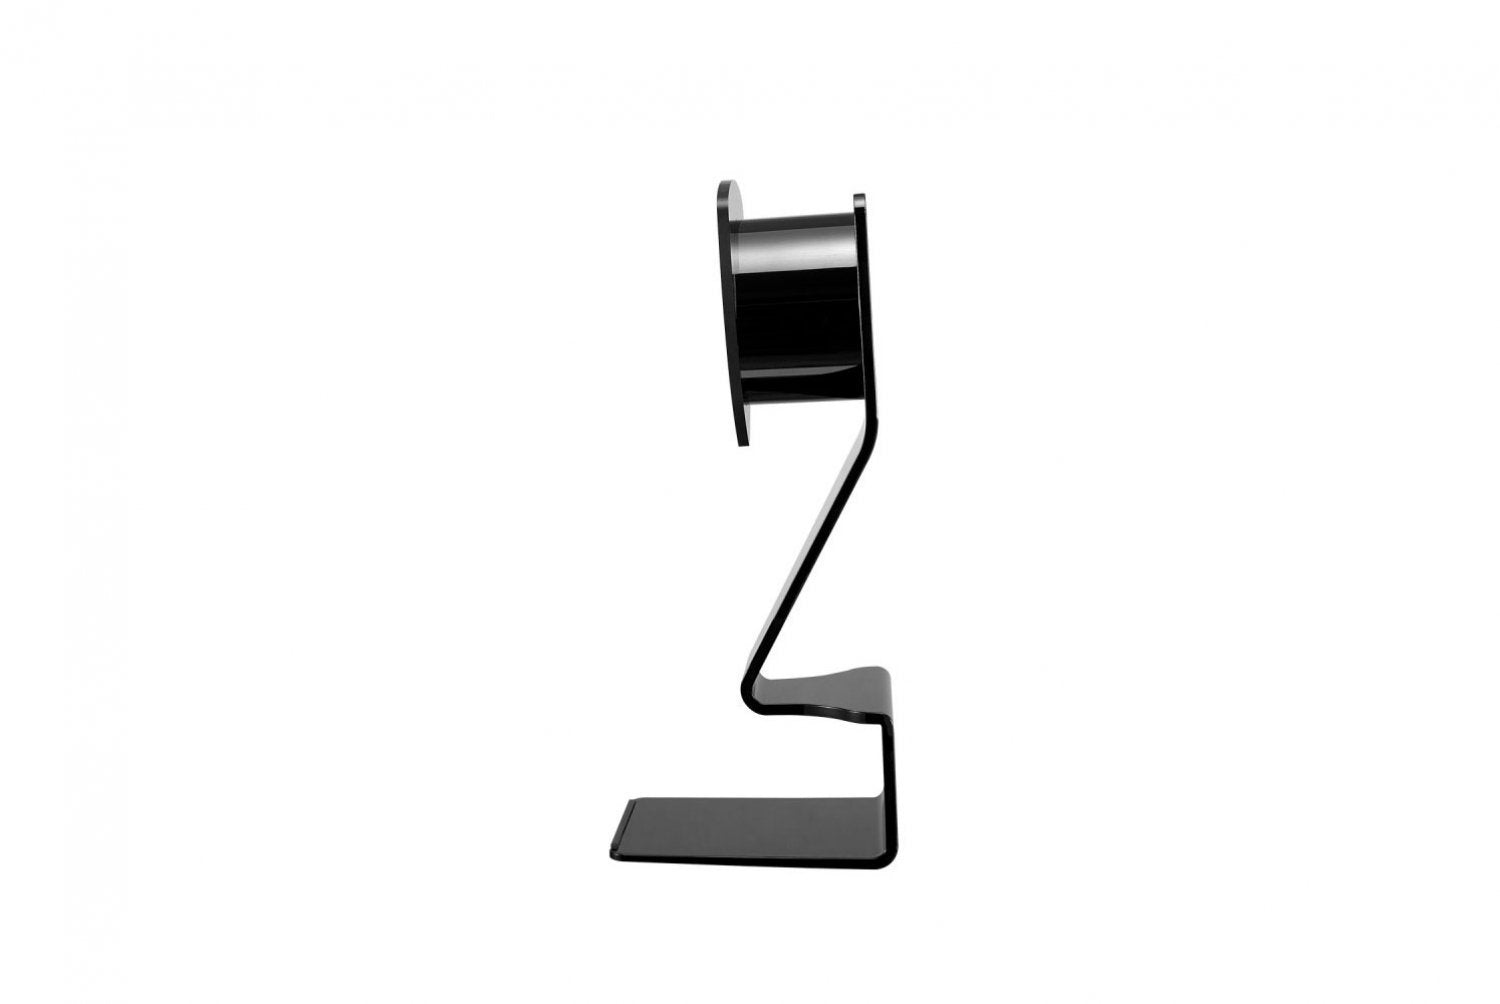 Asus ROG Headset Stand - Console Accessories by Asus The Chelsea Gamer